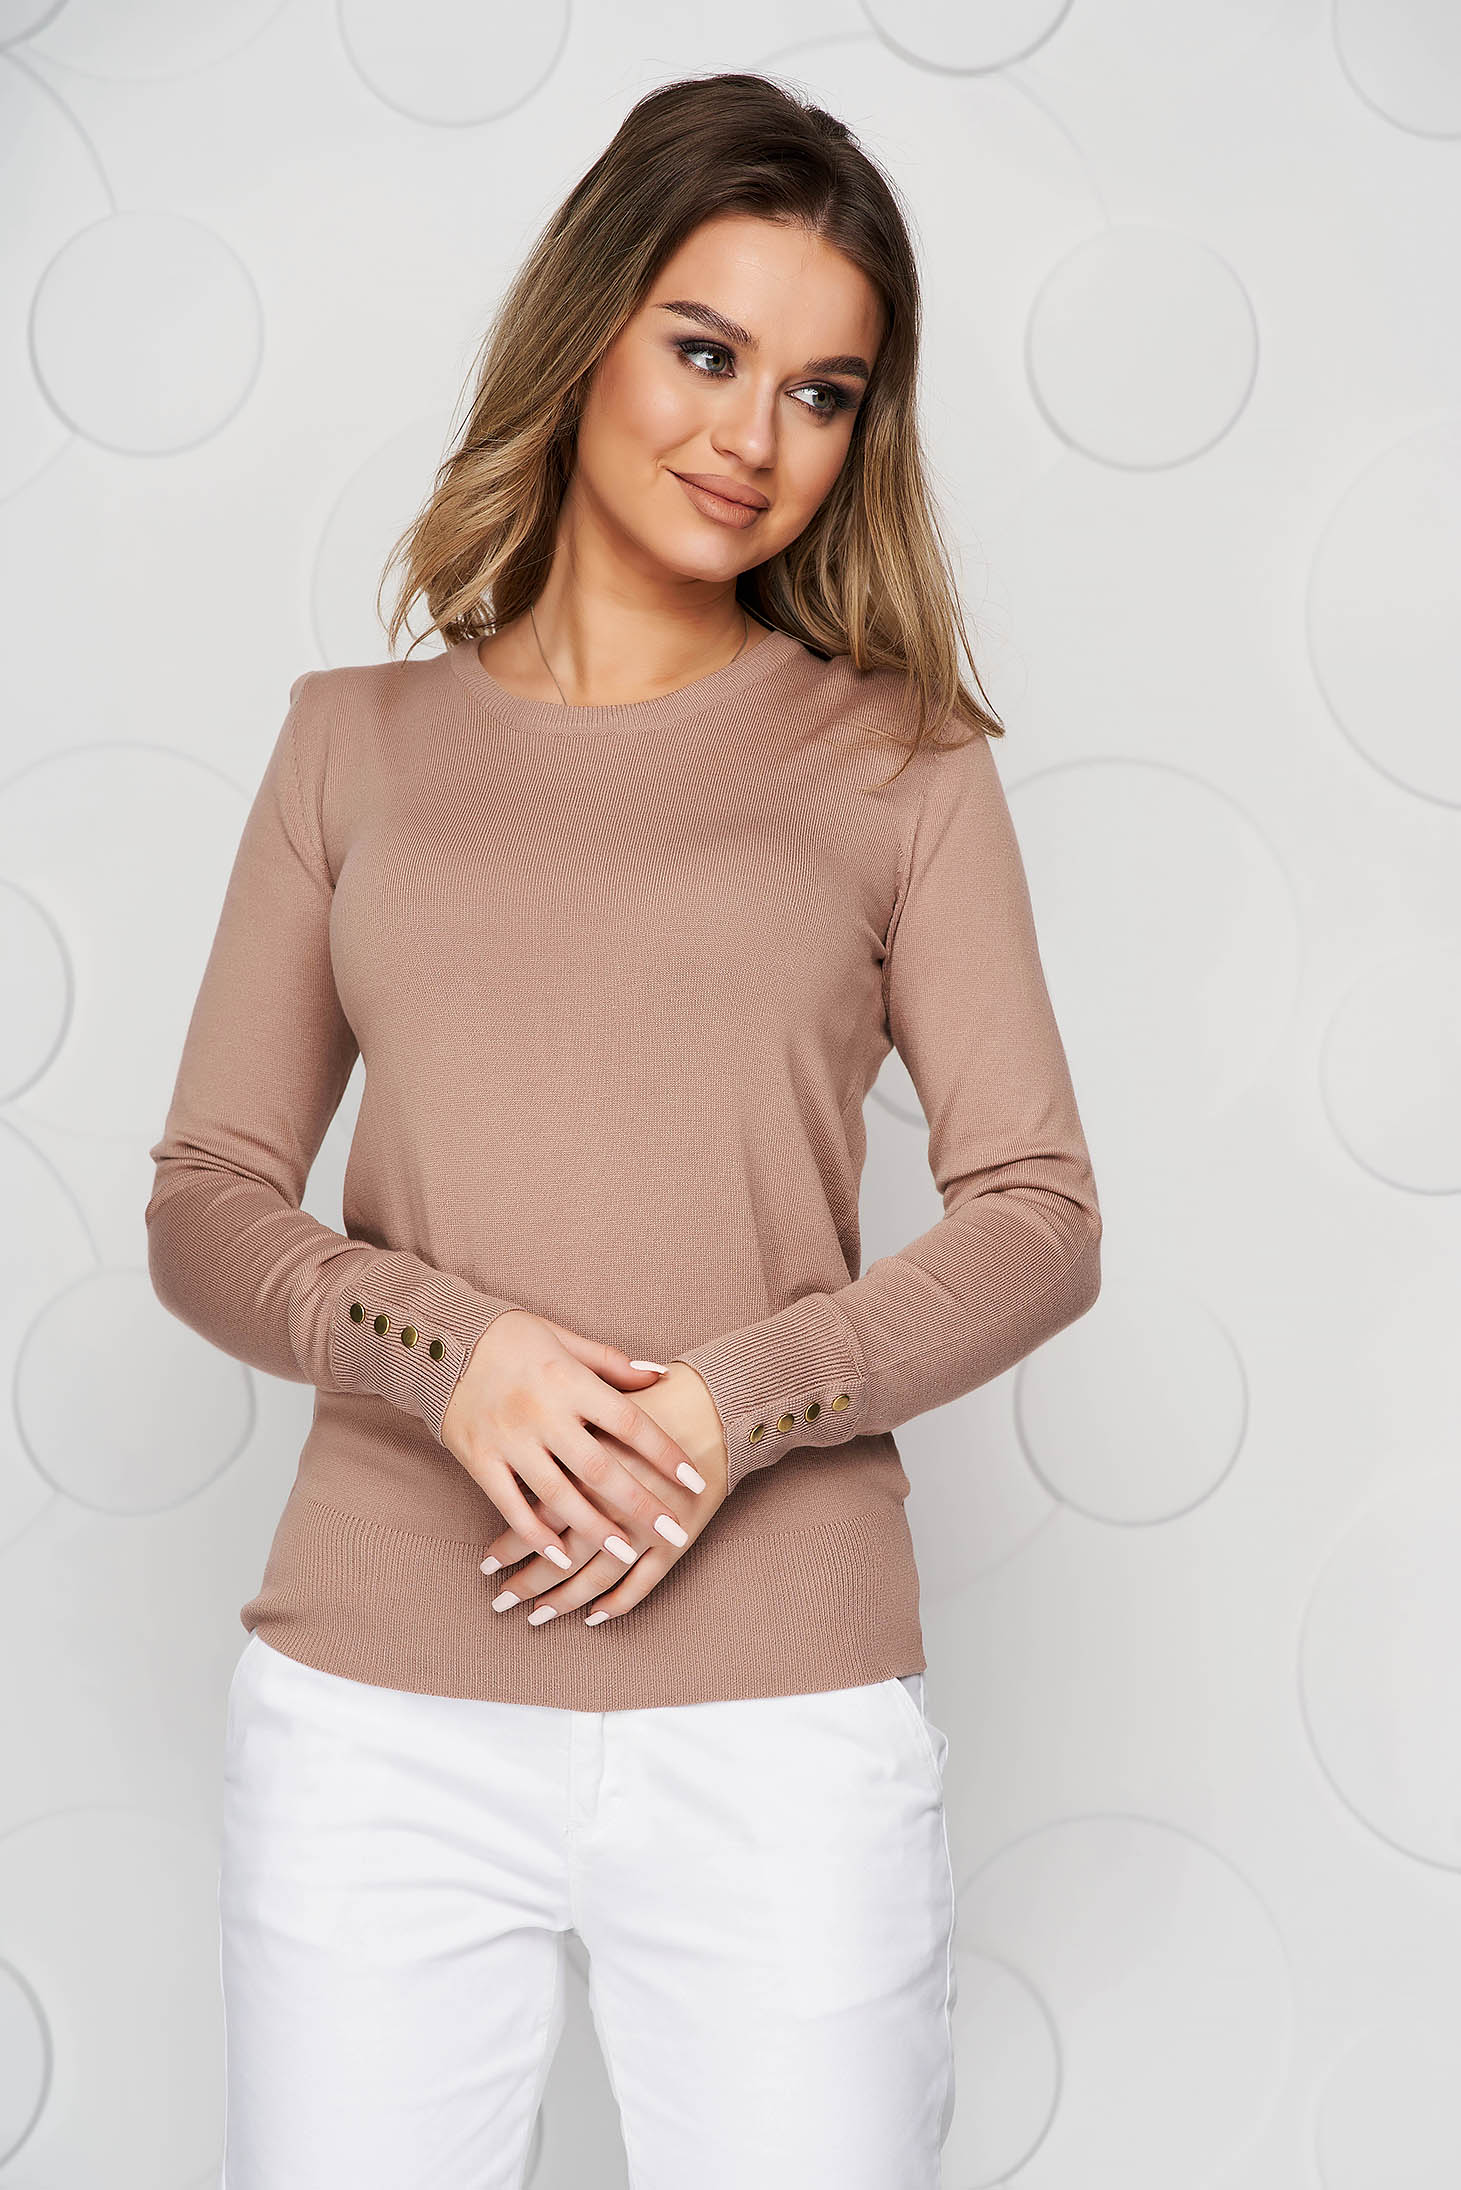 Lightbrown sweater knitted from elastic and fine fabric from striped fabric with button accessories